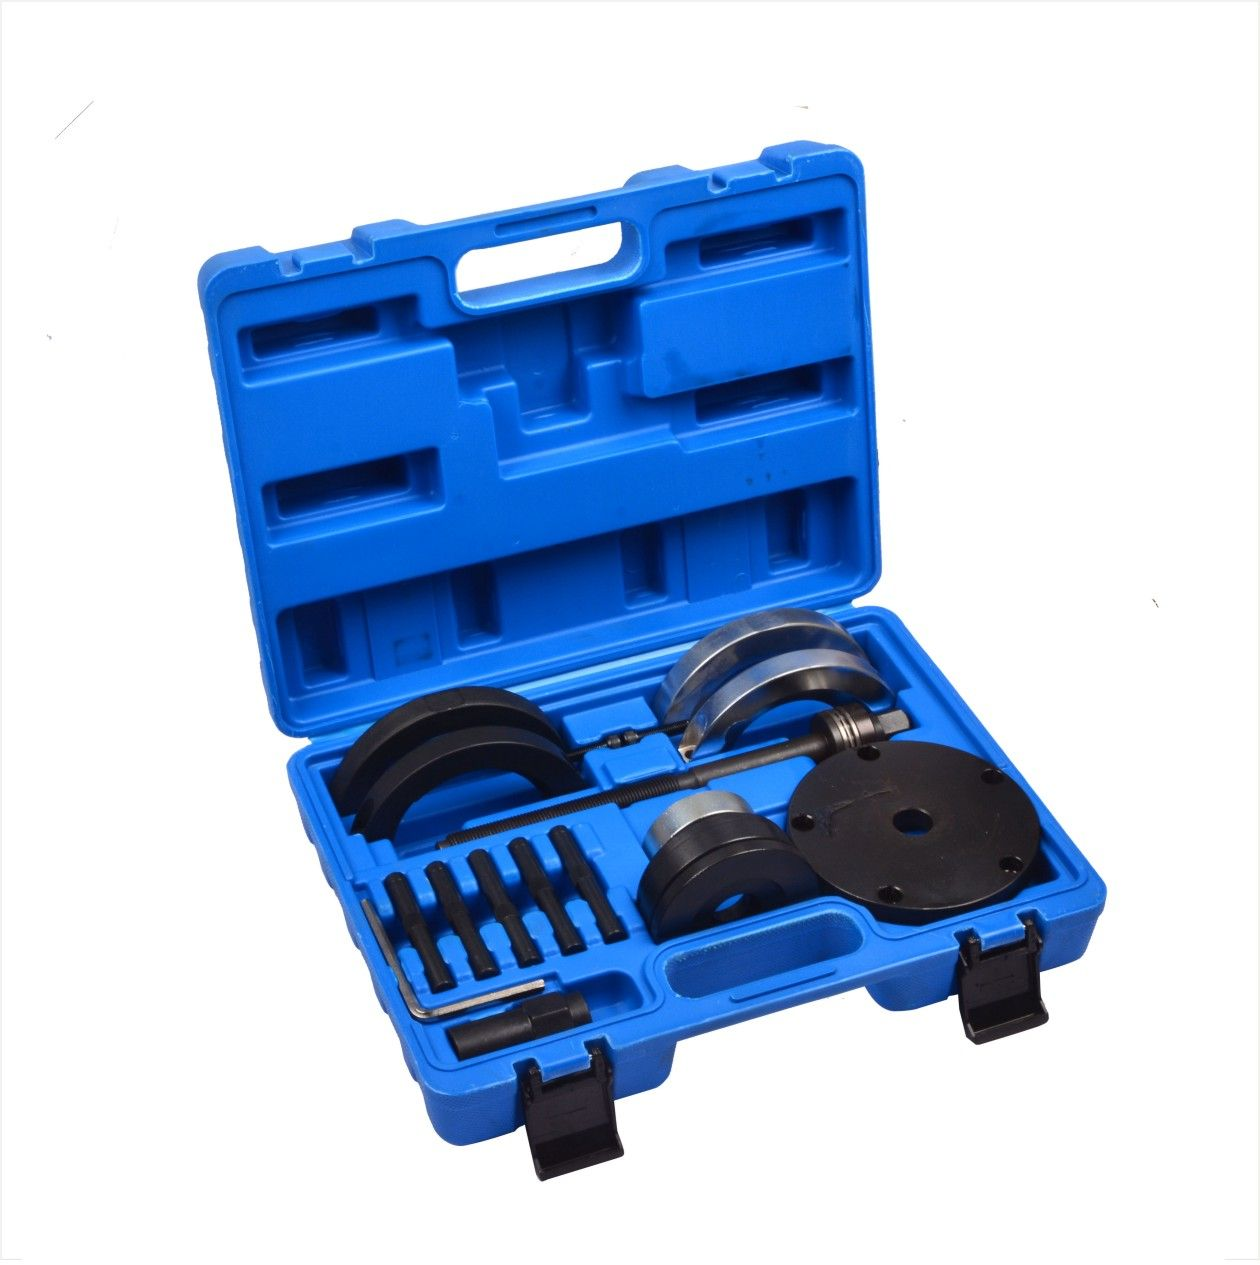 New High Quality 85 mm Front Wheel Bearing Tools For VW T5 Touareg Transporter Multivan With 16